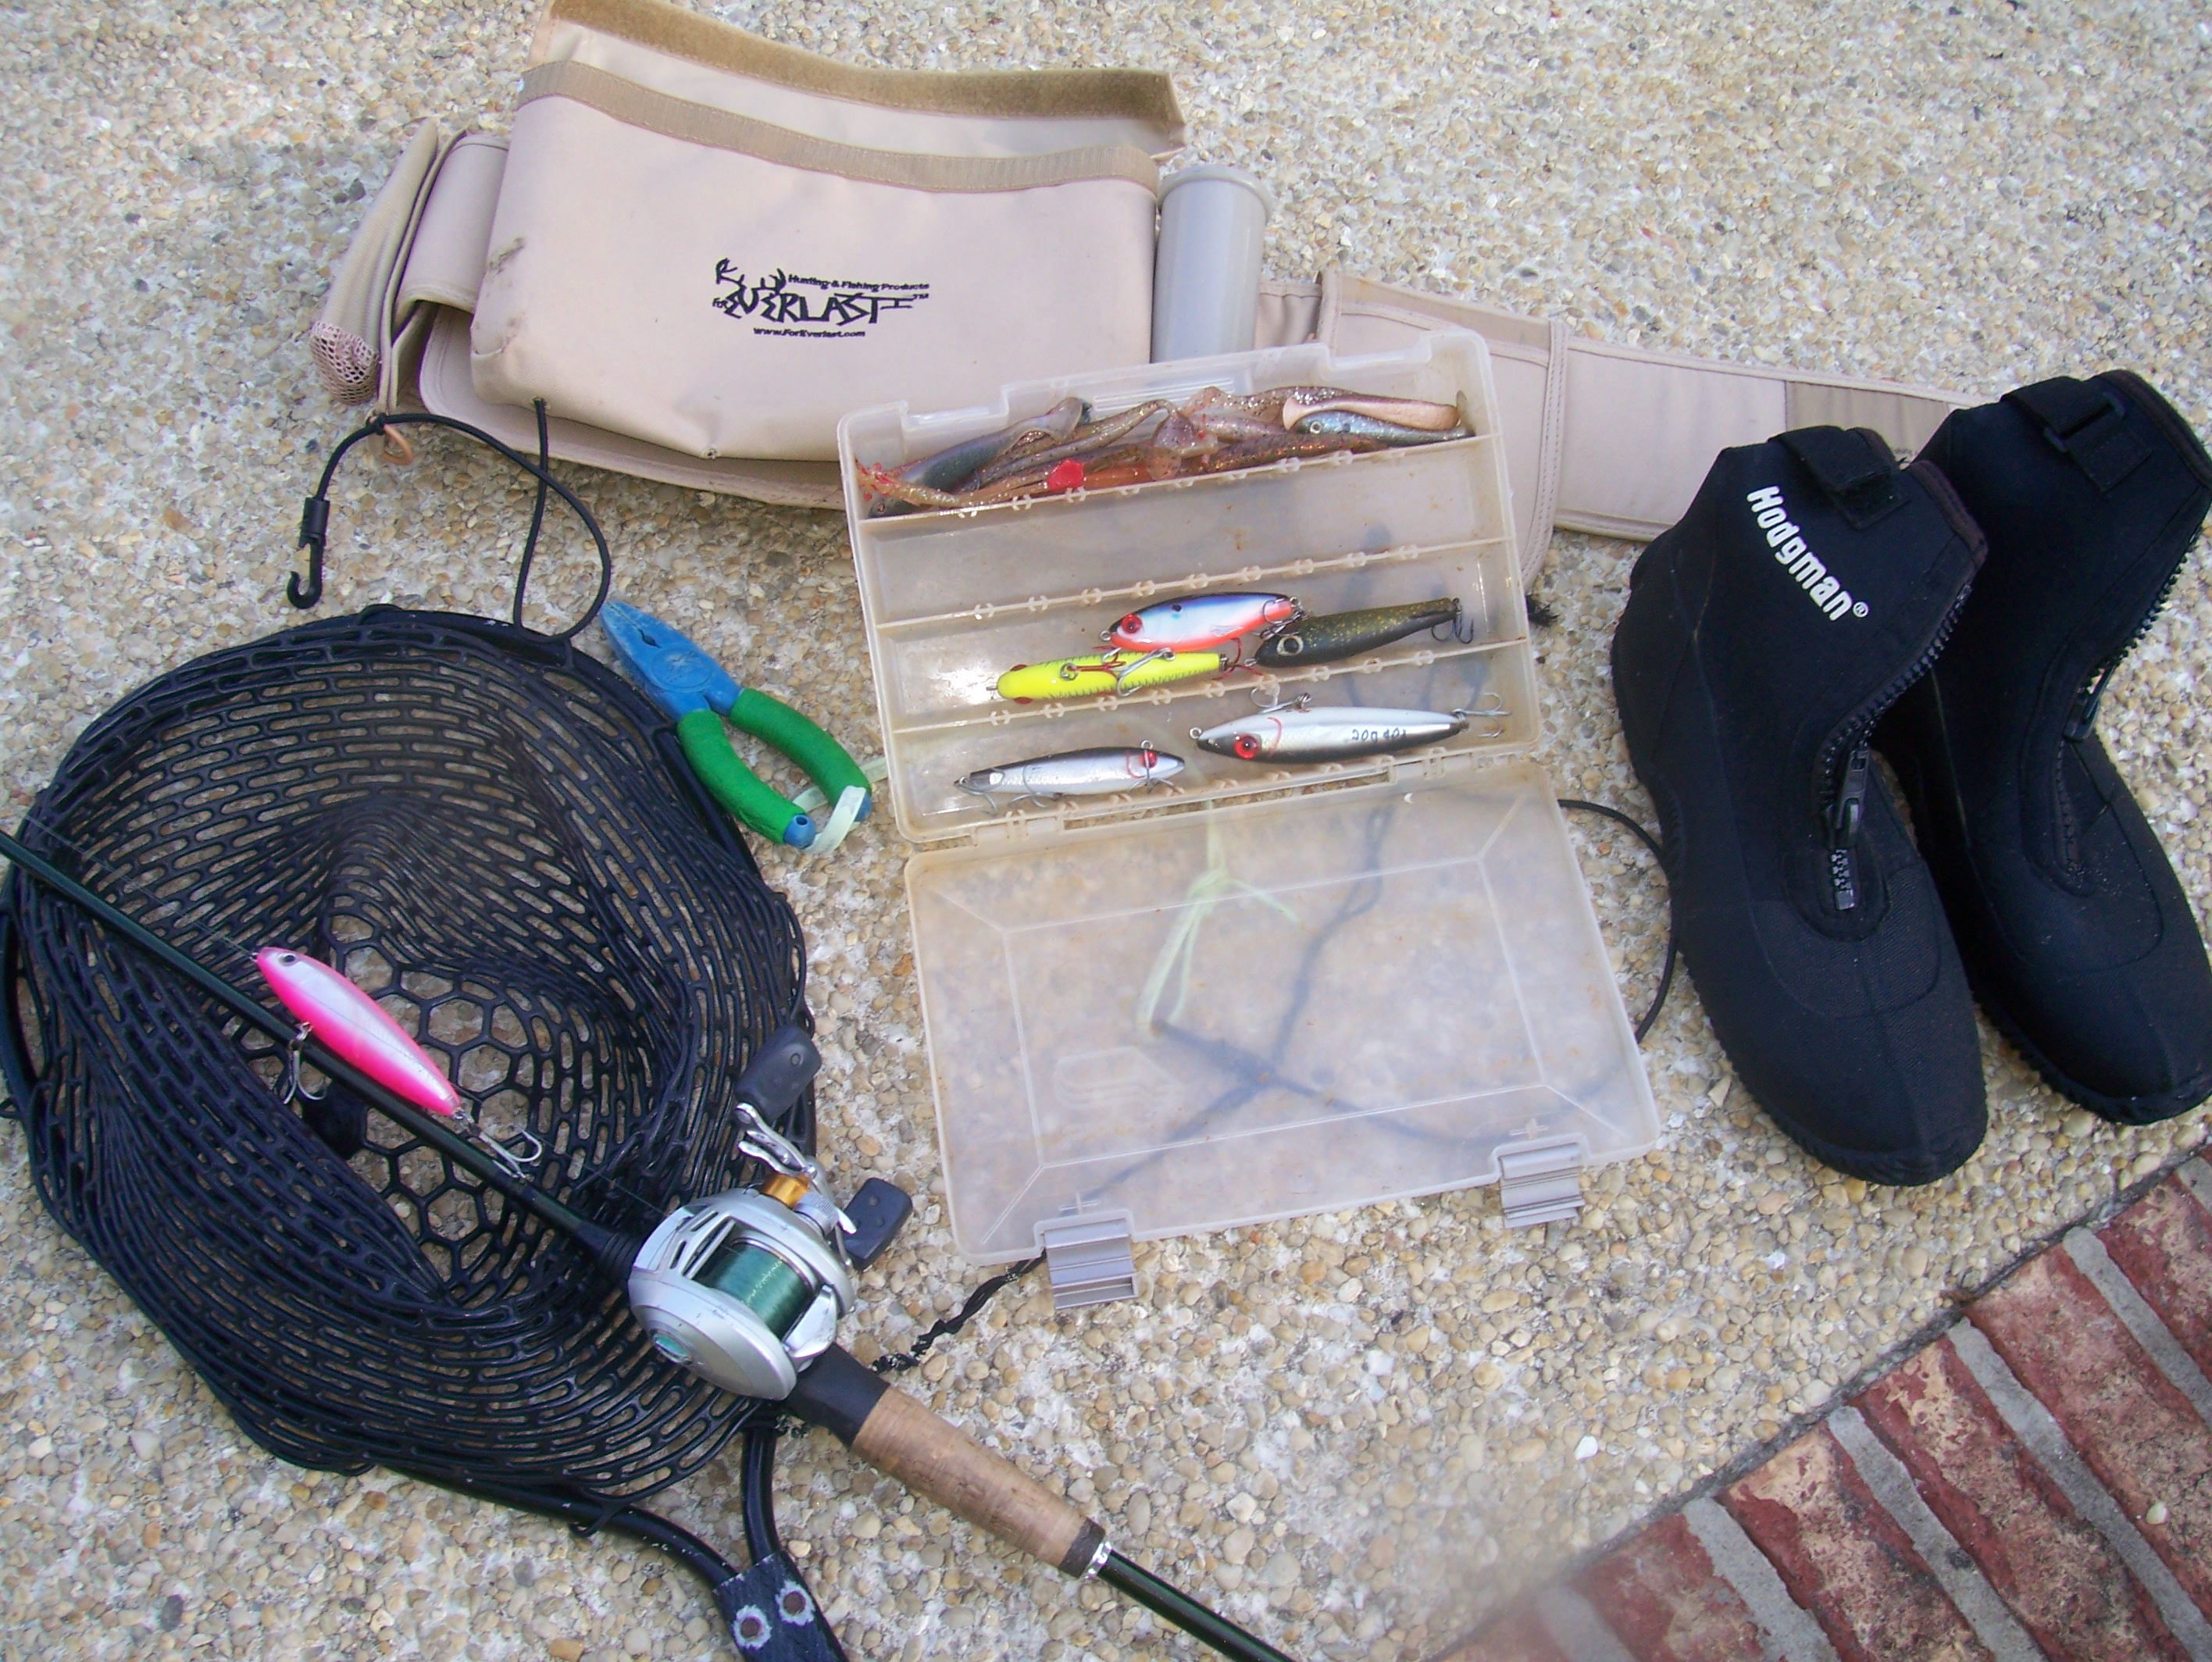 Wade fishing gear to bring while wade fishing for speckled trout.